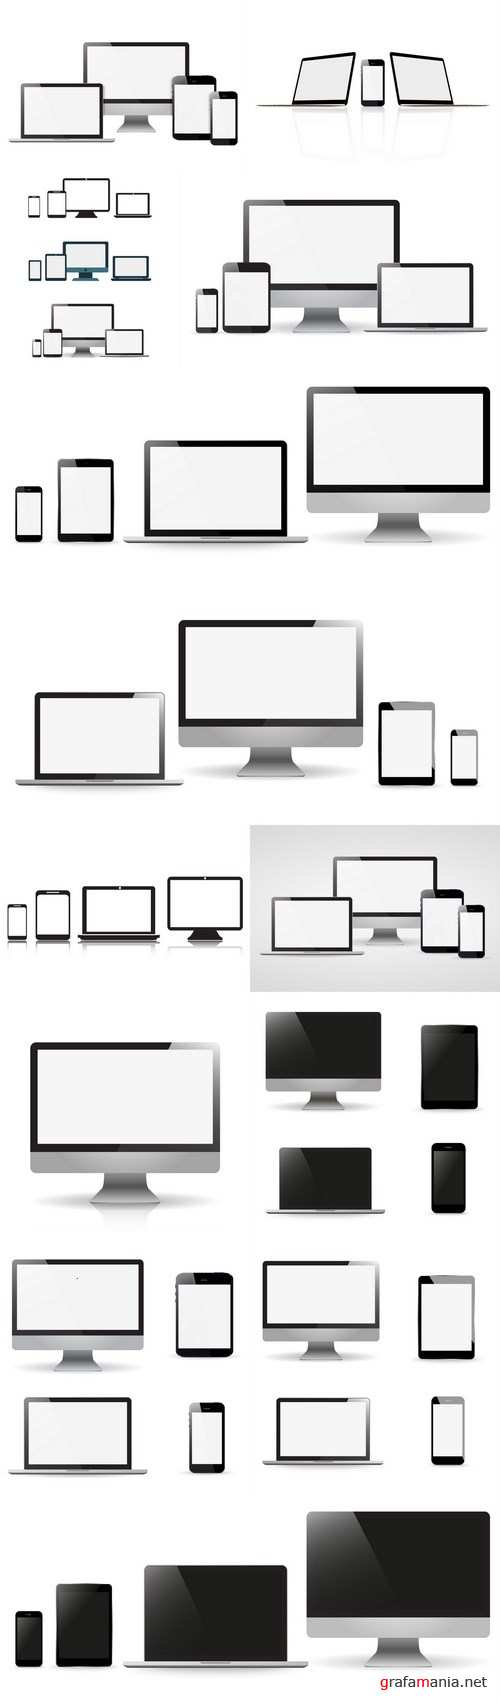 Smartphones, computers and gadgets - 13xEPS